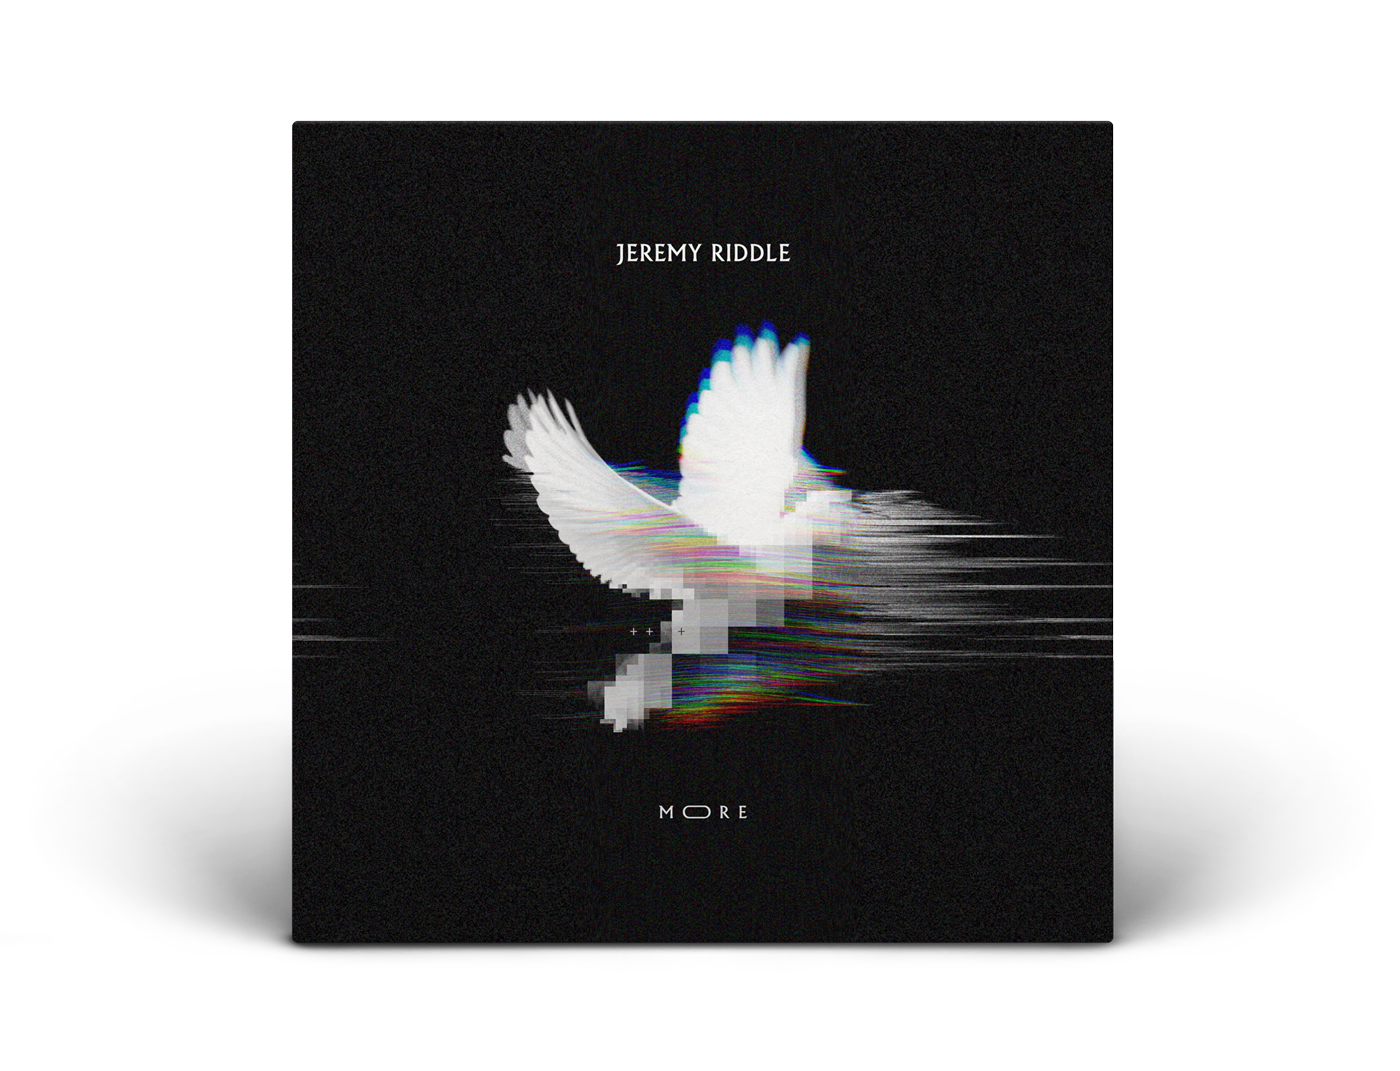 """The final album artwork for Jeremy's """"More""""."""